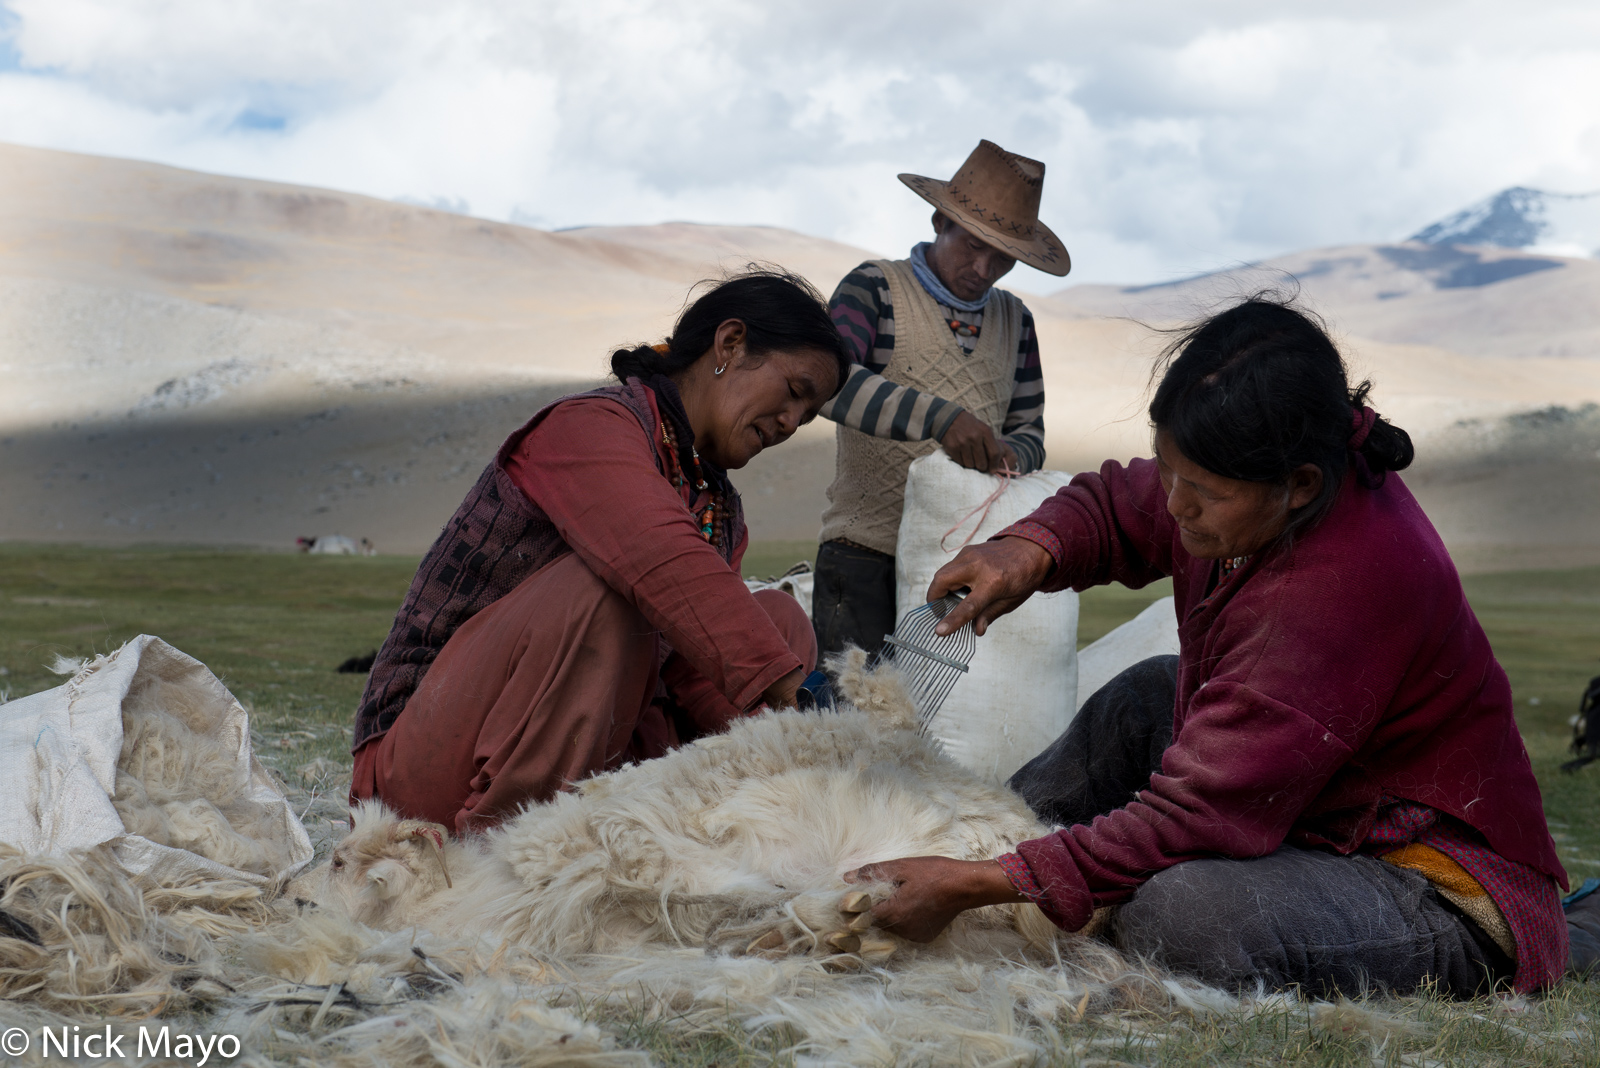 Changpa women at Lake Tso Moriri lake combing the fleece of a Pashmina goat for its cashmere wool.